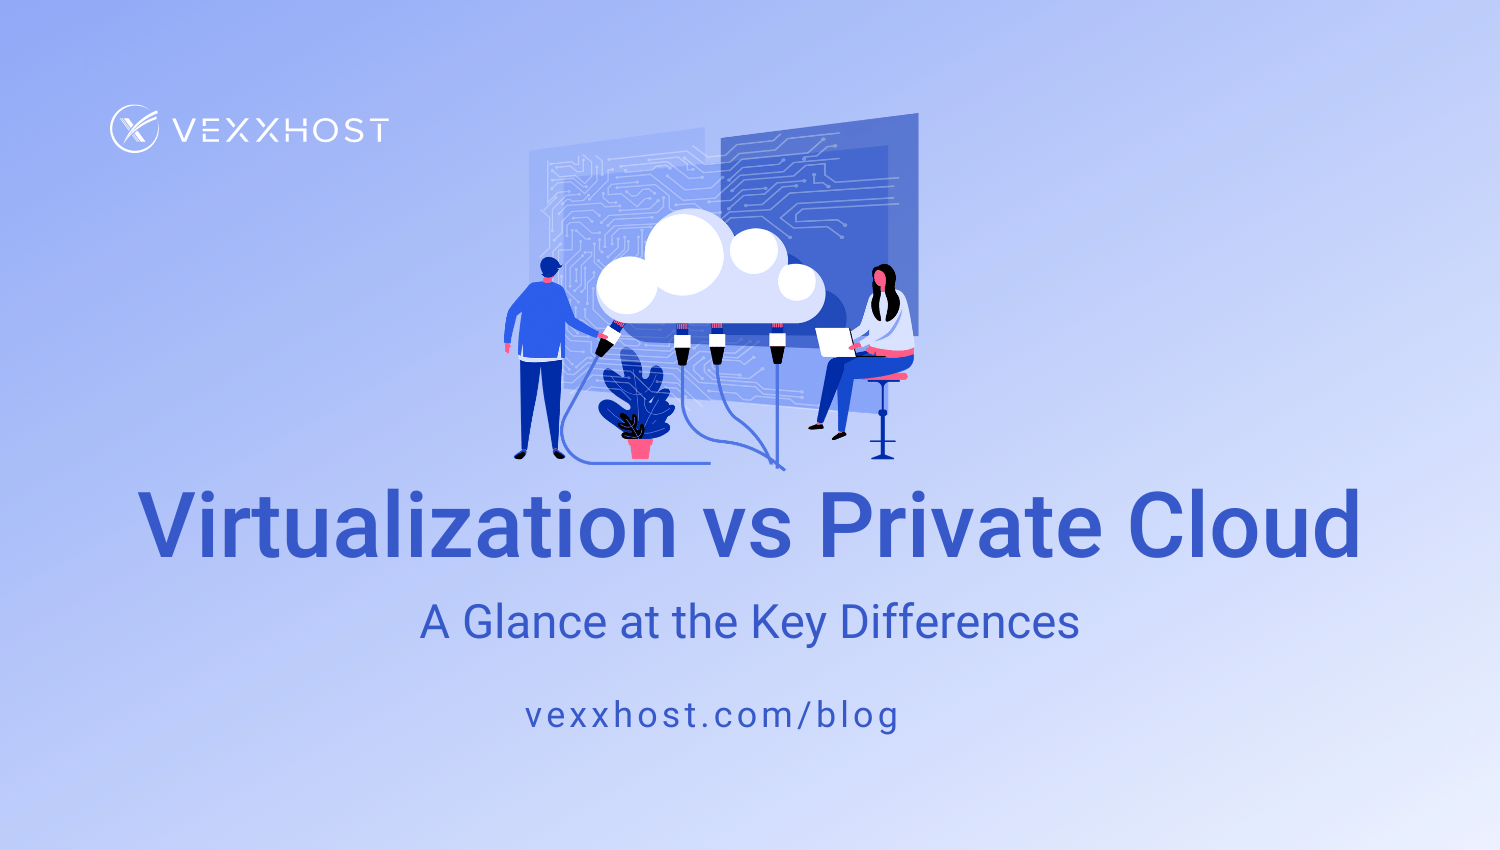 Virtualization vs. Private Cloud - A Glance at the Key Differences